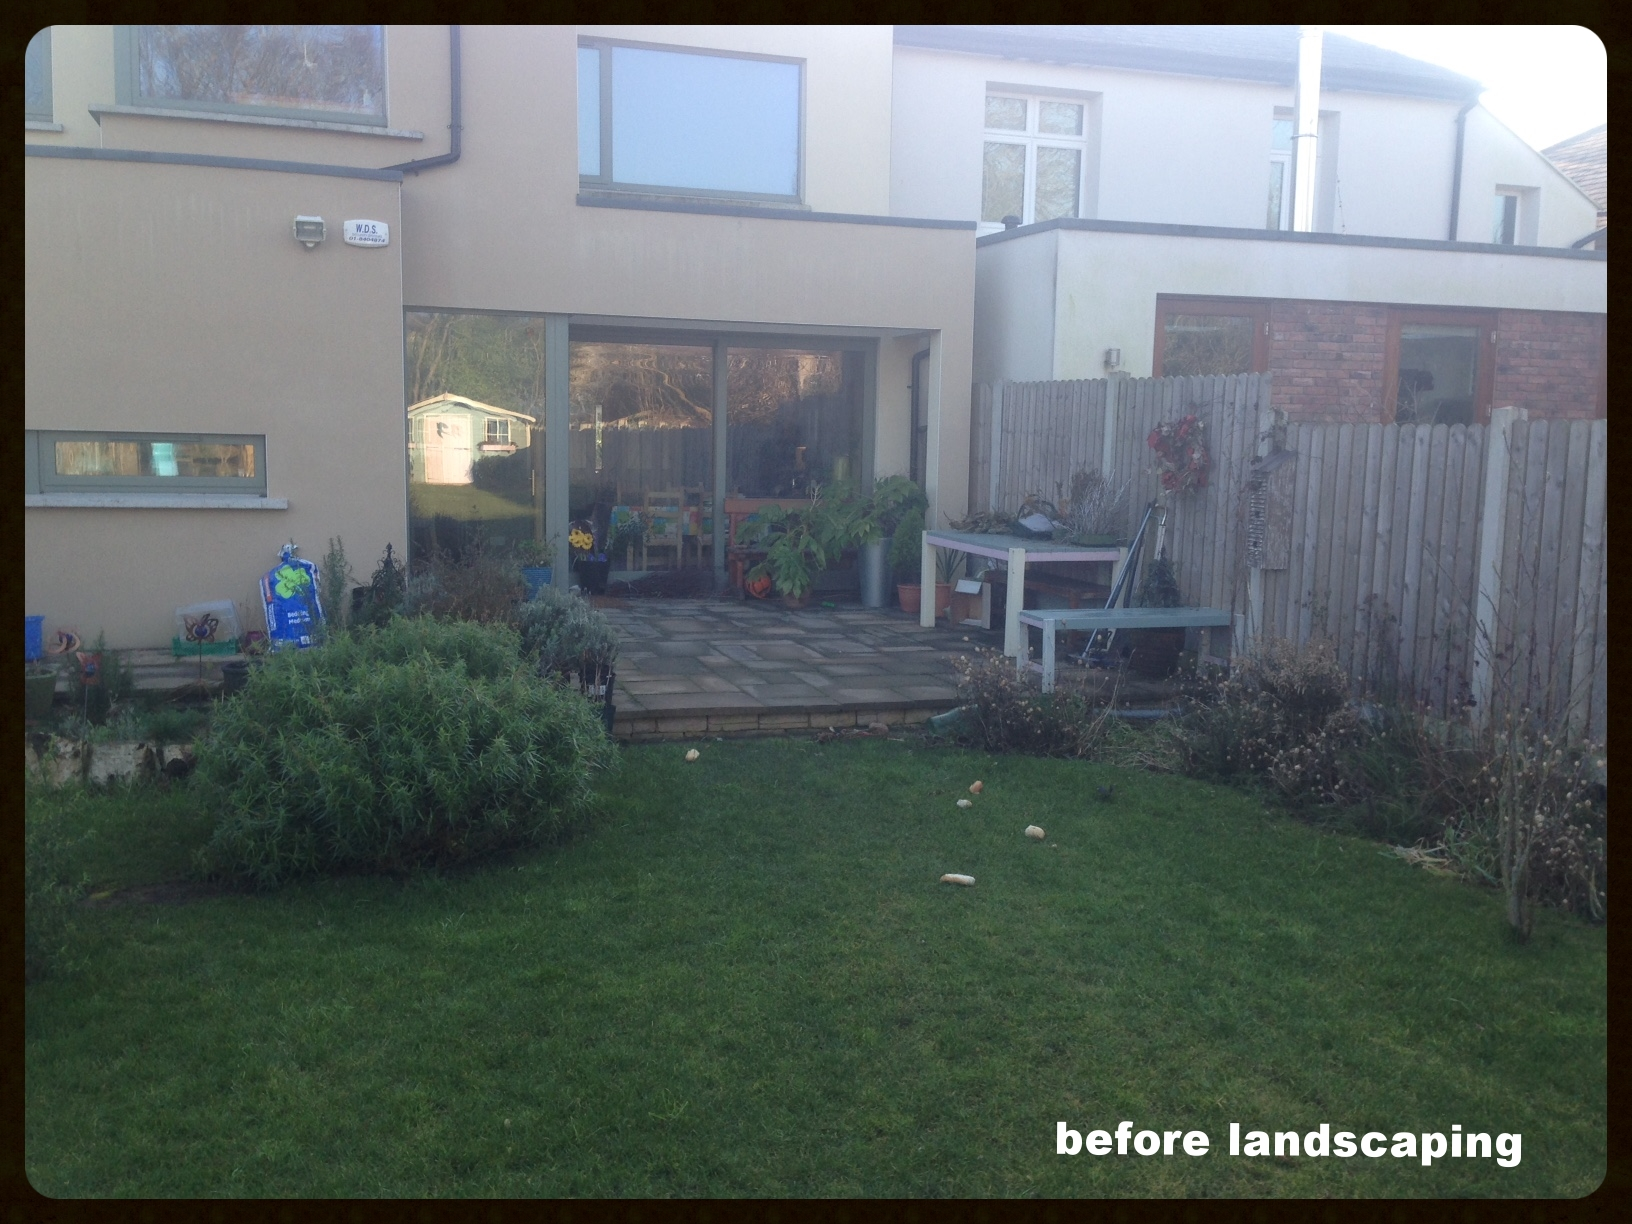 garden before landscaping.JPG